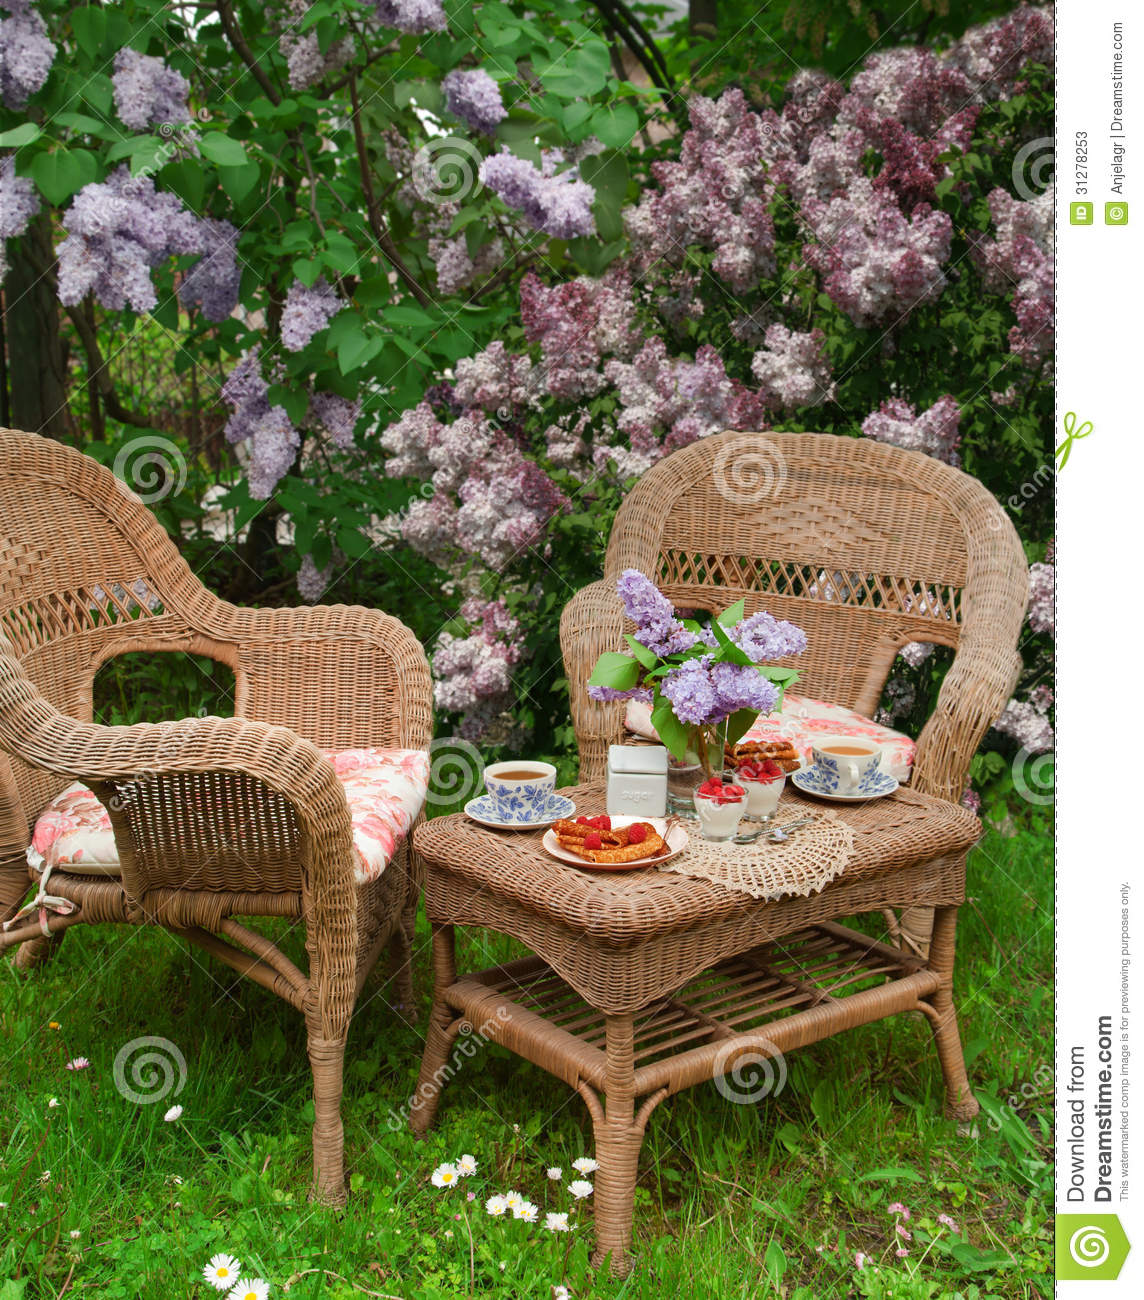 Breakfast at the garden stock photos image 31278253 for Au jardin brunch